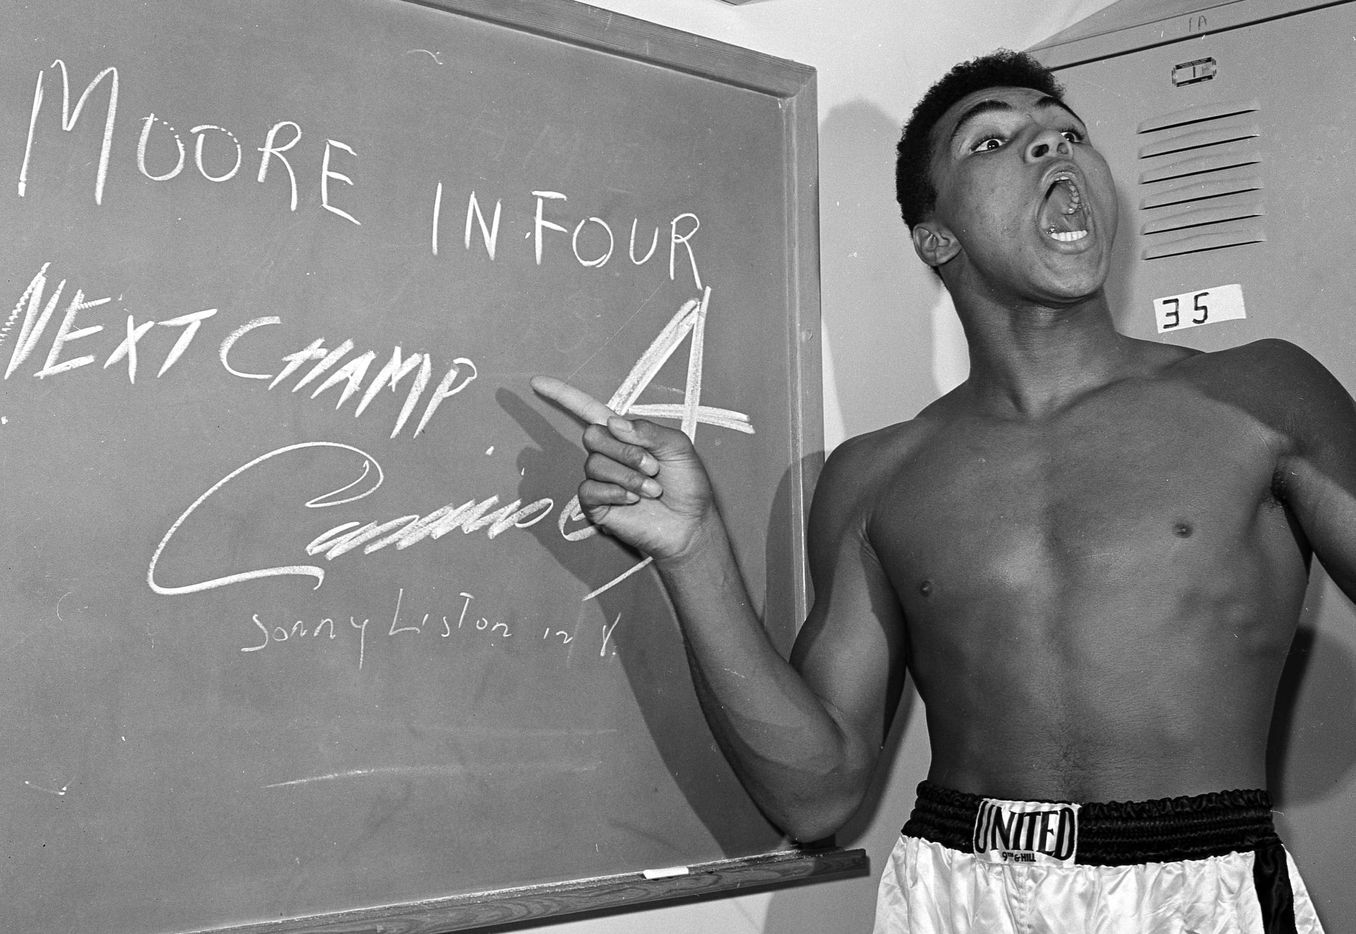 FILE - In this Nov. 15, 1962, file photo, young heavyweight boxer Cassius Clay, who later changed his name to Muhammad Ali,  points to a sign he wrote on a chalk board in his dressing room before his fight against Archie Moore in Los Angeles, predicting he'd knock Moore out in the fourth round, which he went on to do.  The sign also predicts Clay will be the next champ via a knockout over Sonny Liston in eight rounds. He did it in seven rounds.